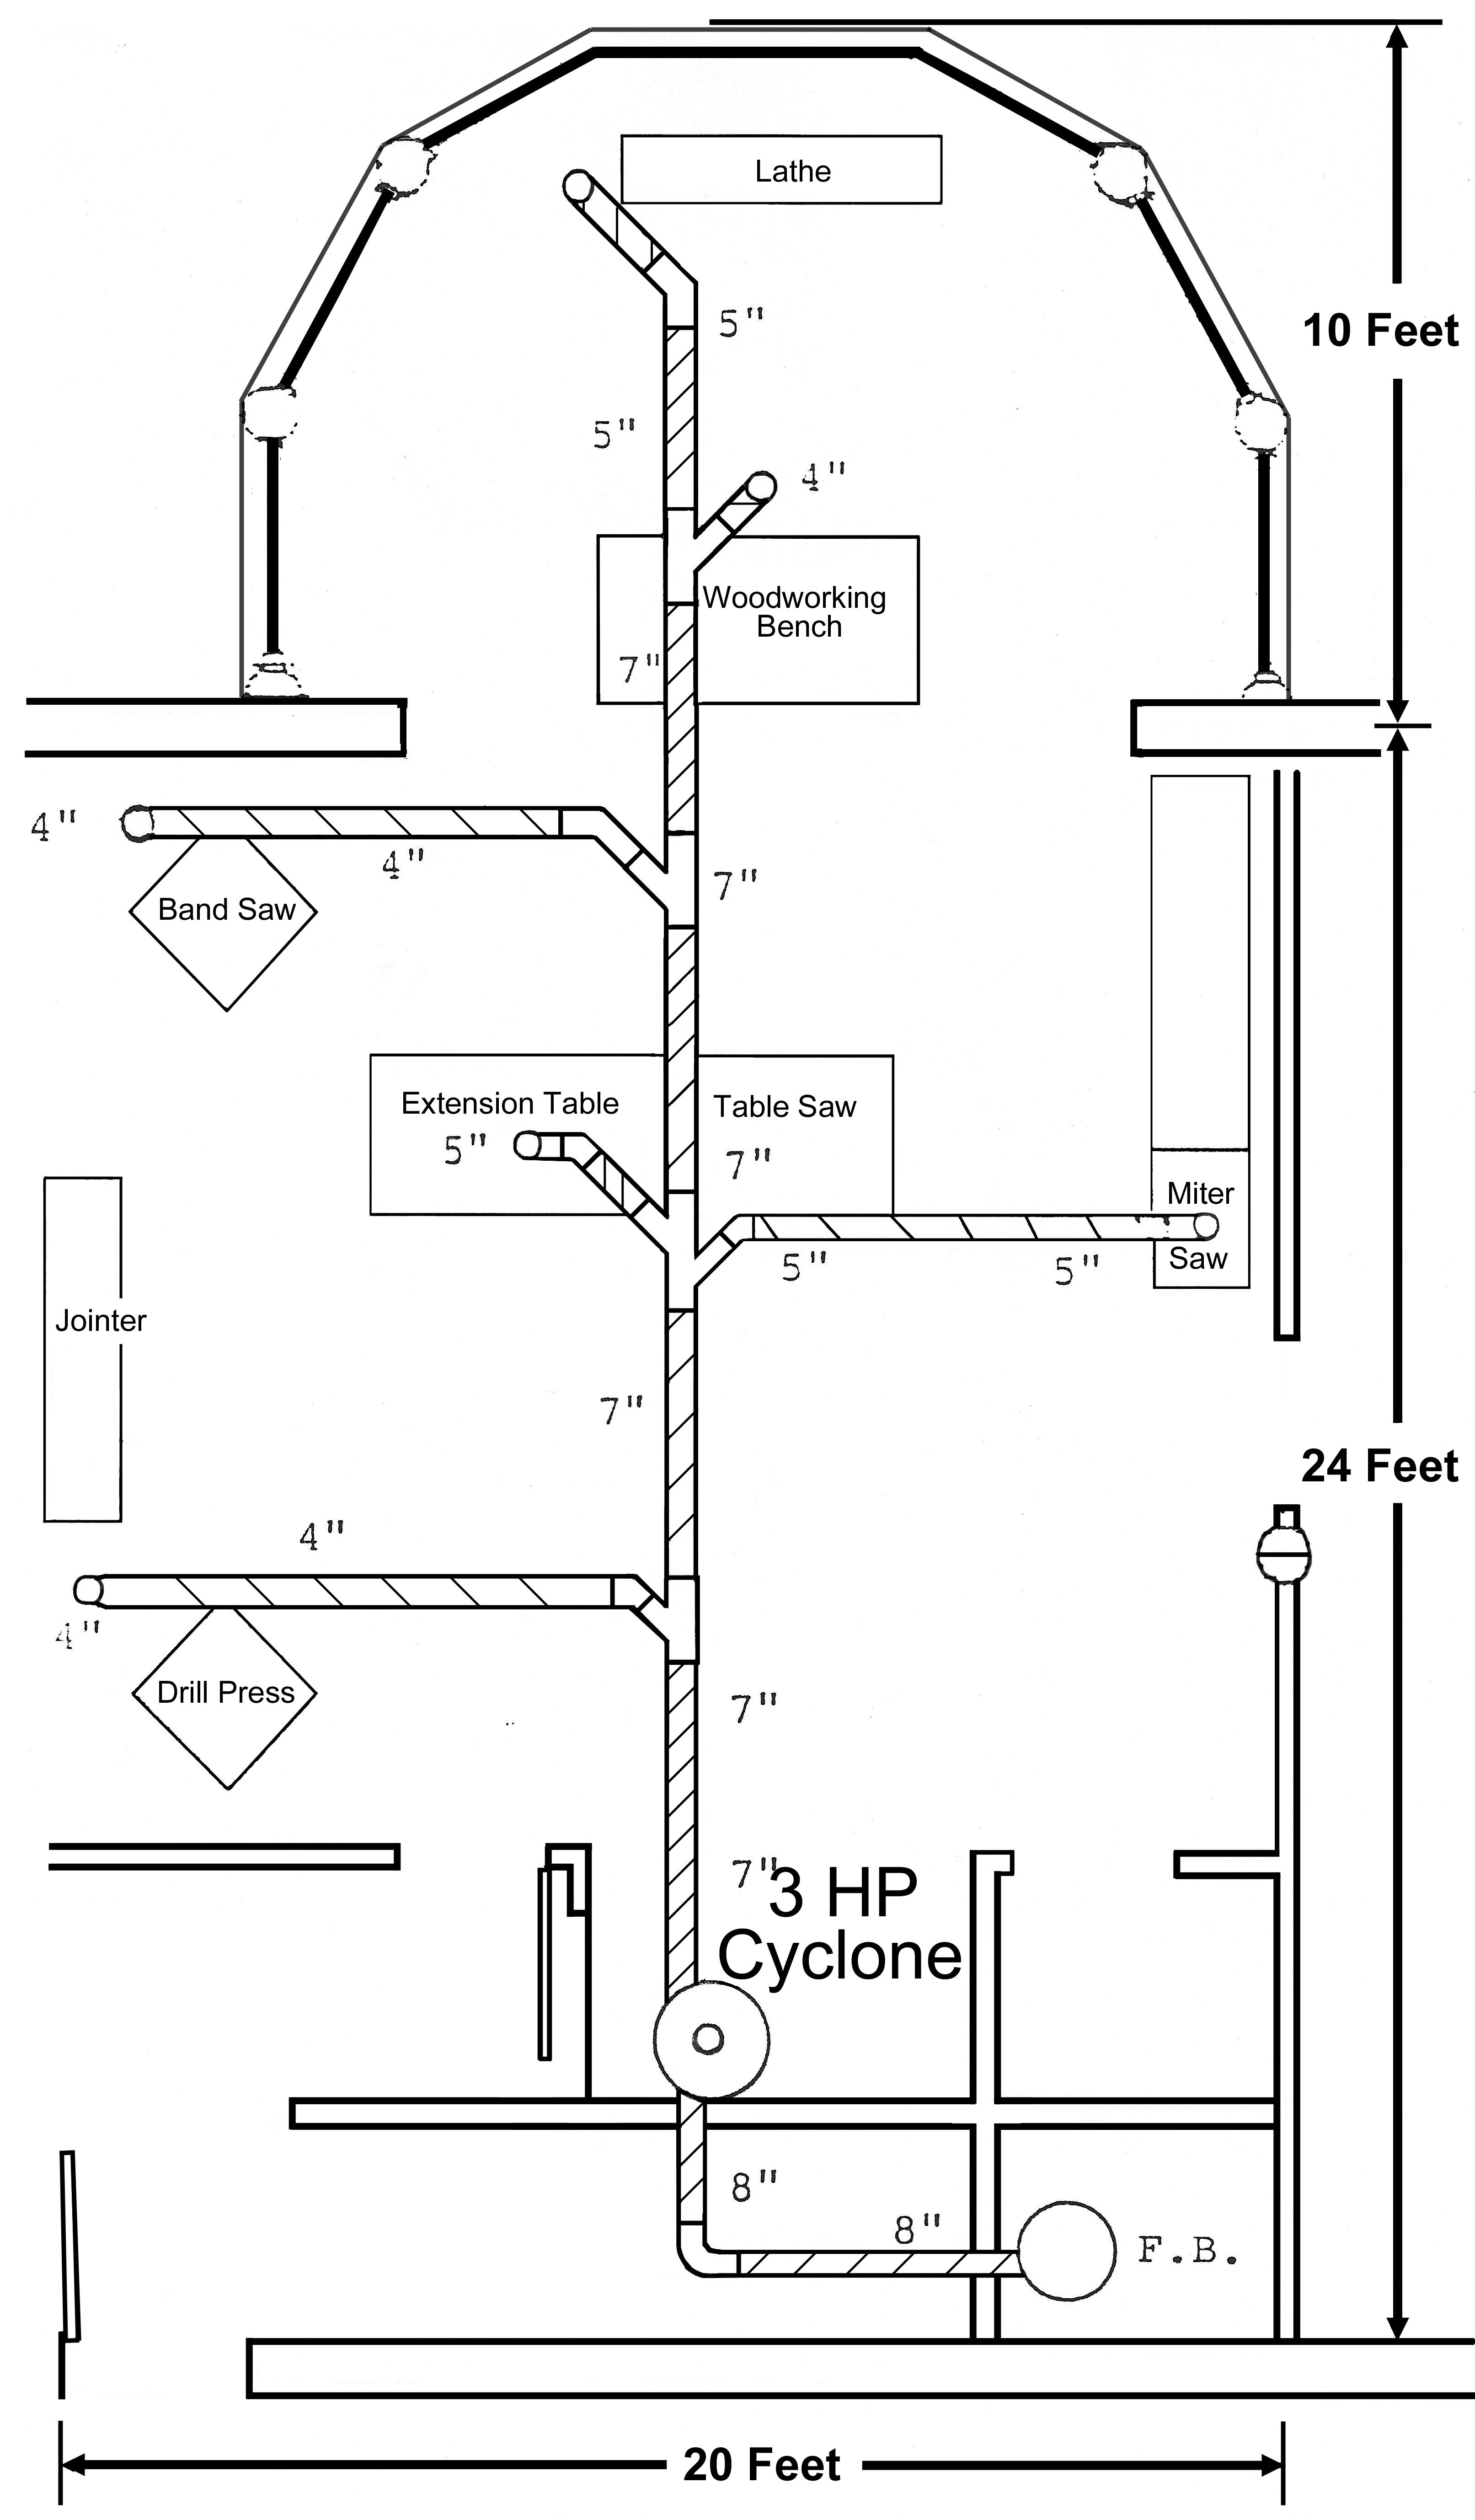 Layout Of Dust Collection System With 3 Hp